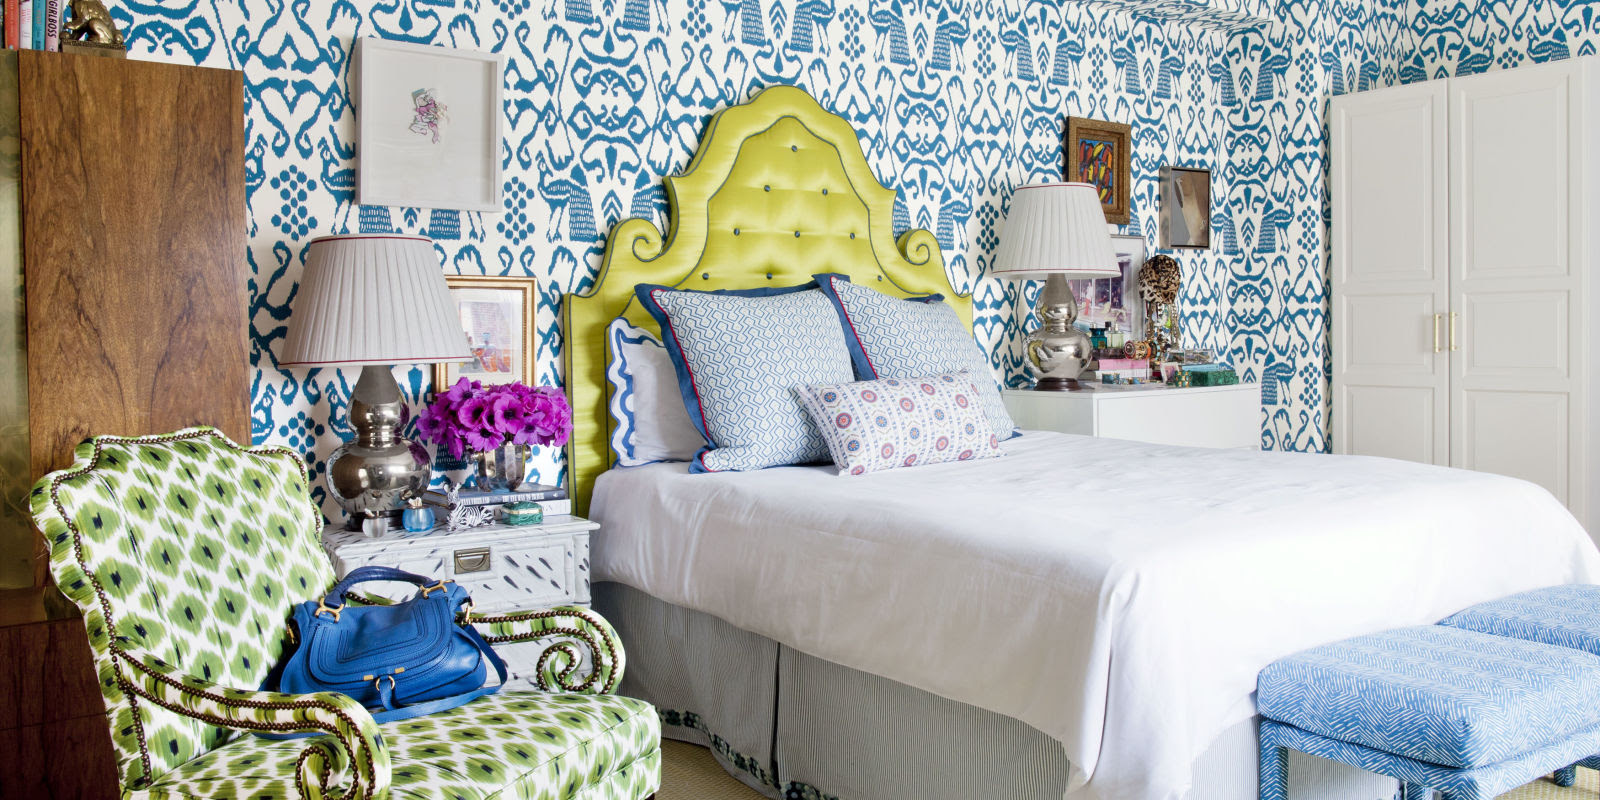 175 Stylish Bedroom Decorating Ideas - Design Pictures of ...